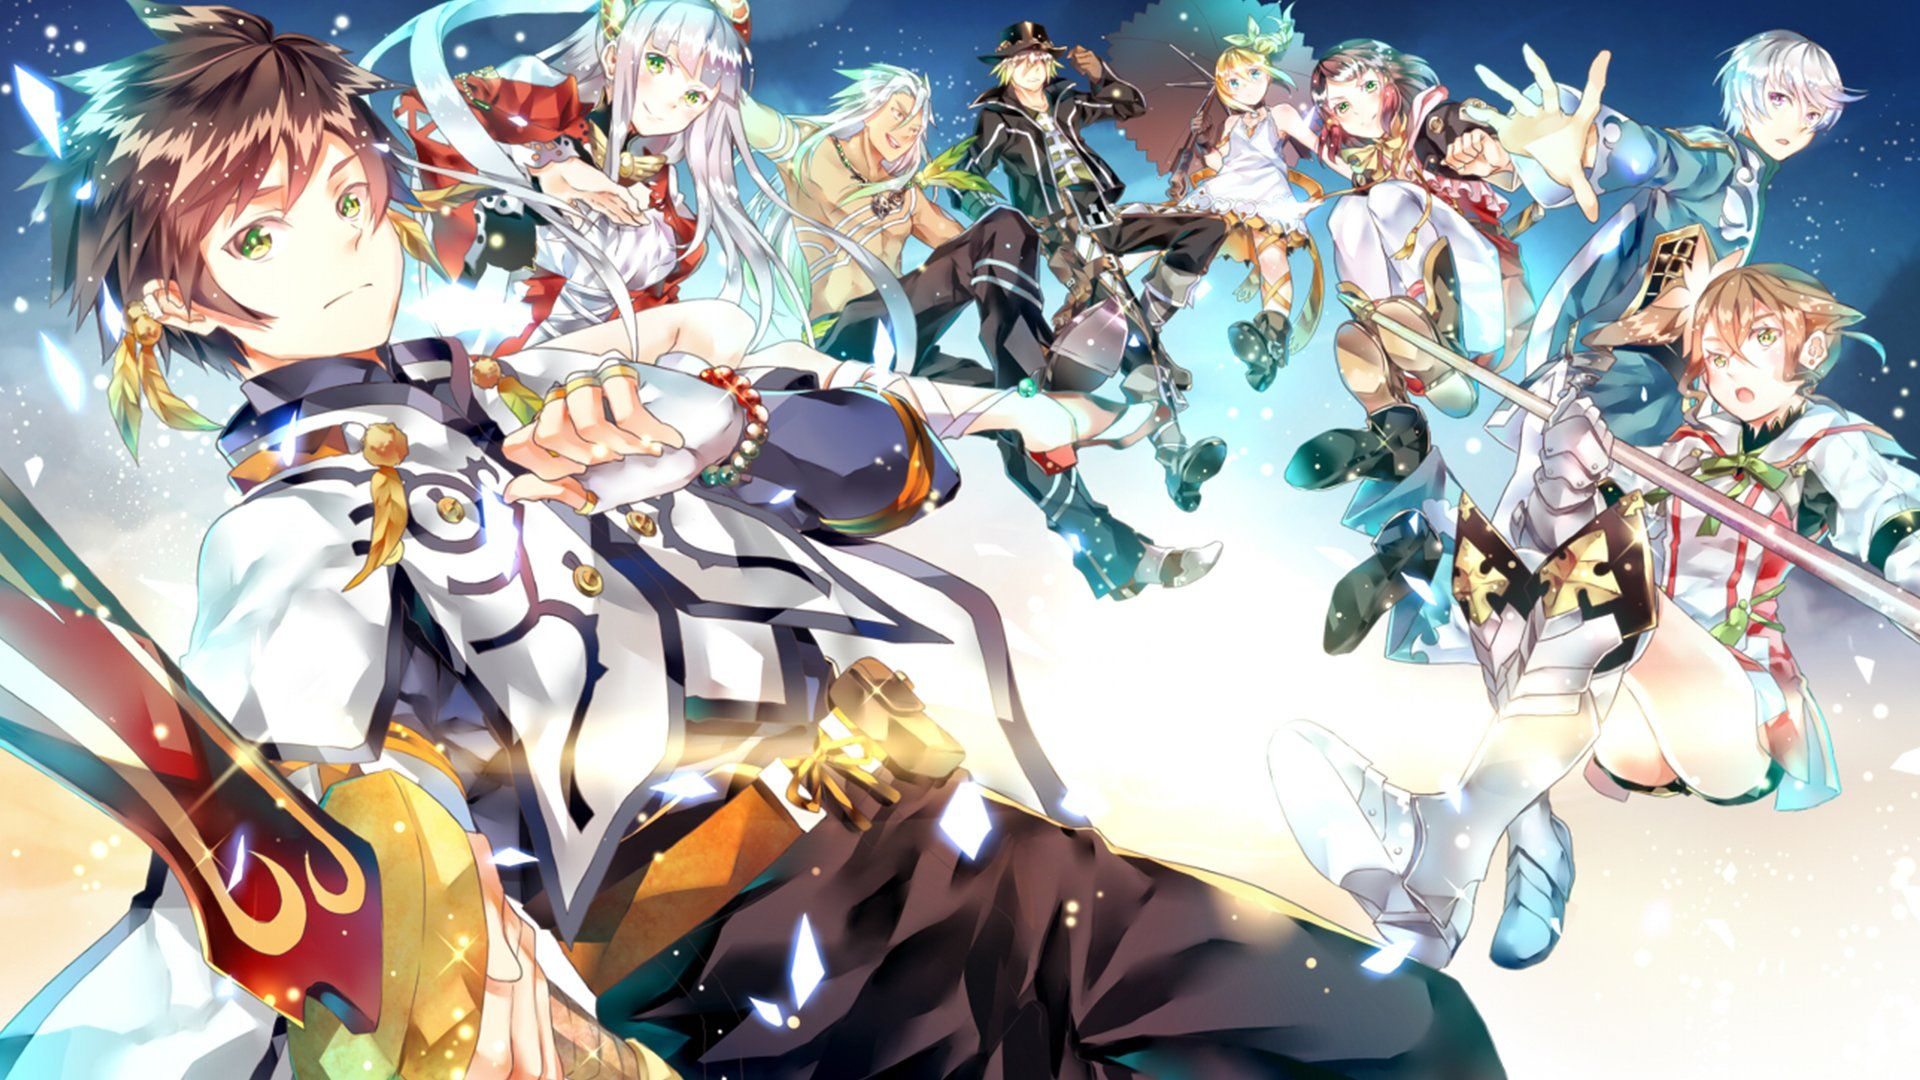 1920x1080 Tales Of Zestiria Wallpaper Background Image View Download Comment And Rate Wallpaper Abyss Tales Of Zestiria Tales Of Xillia Anime